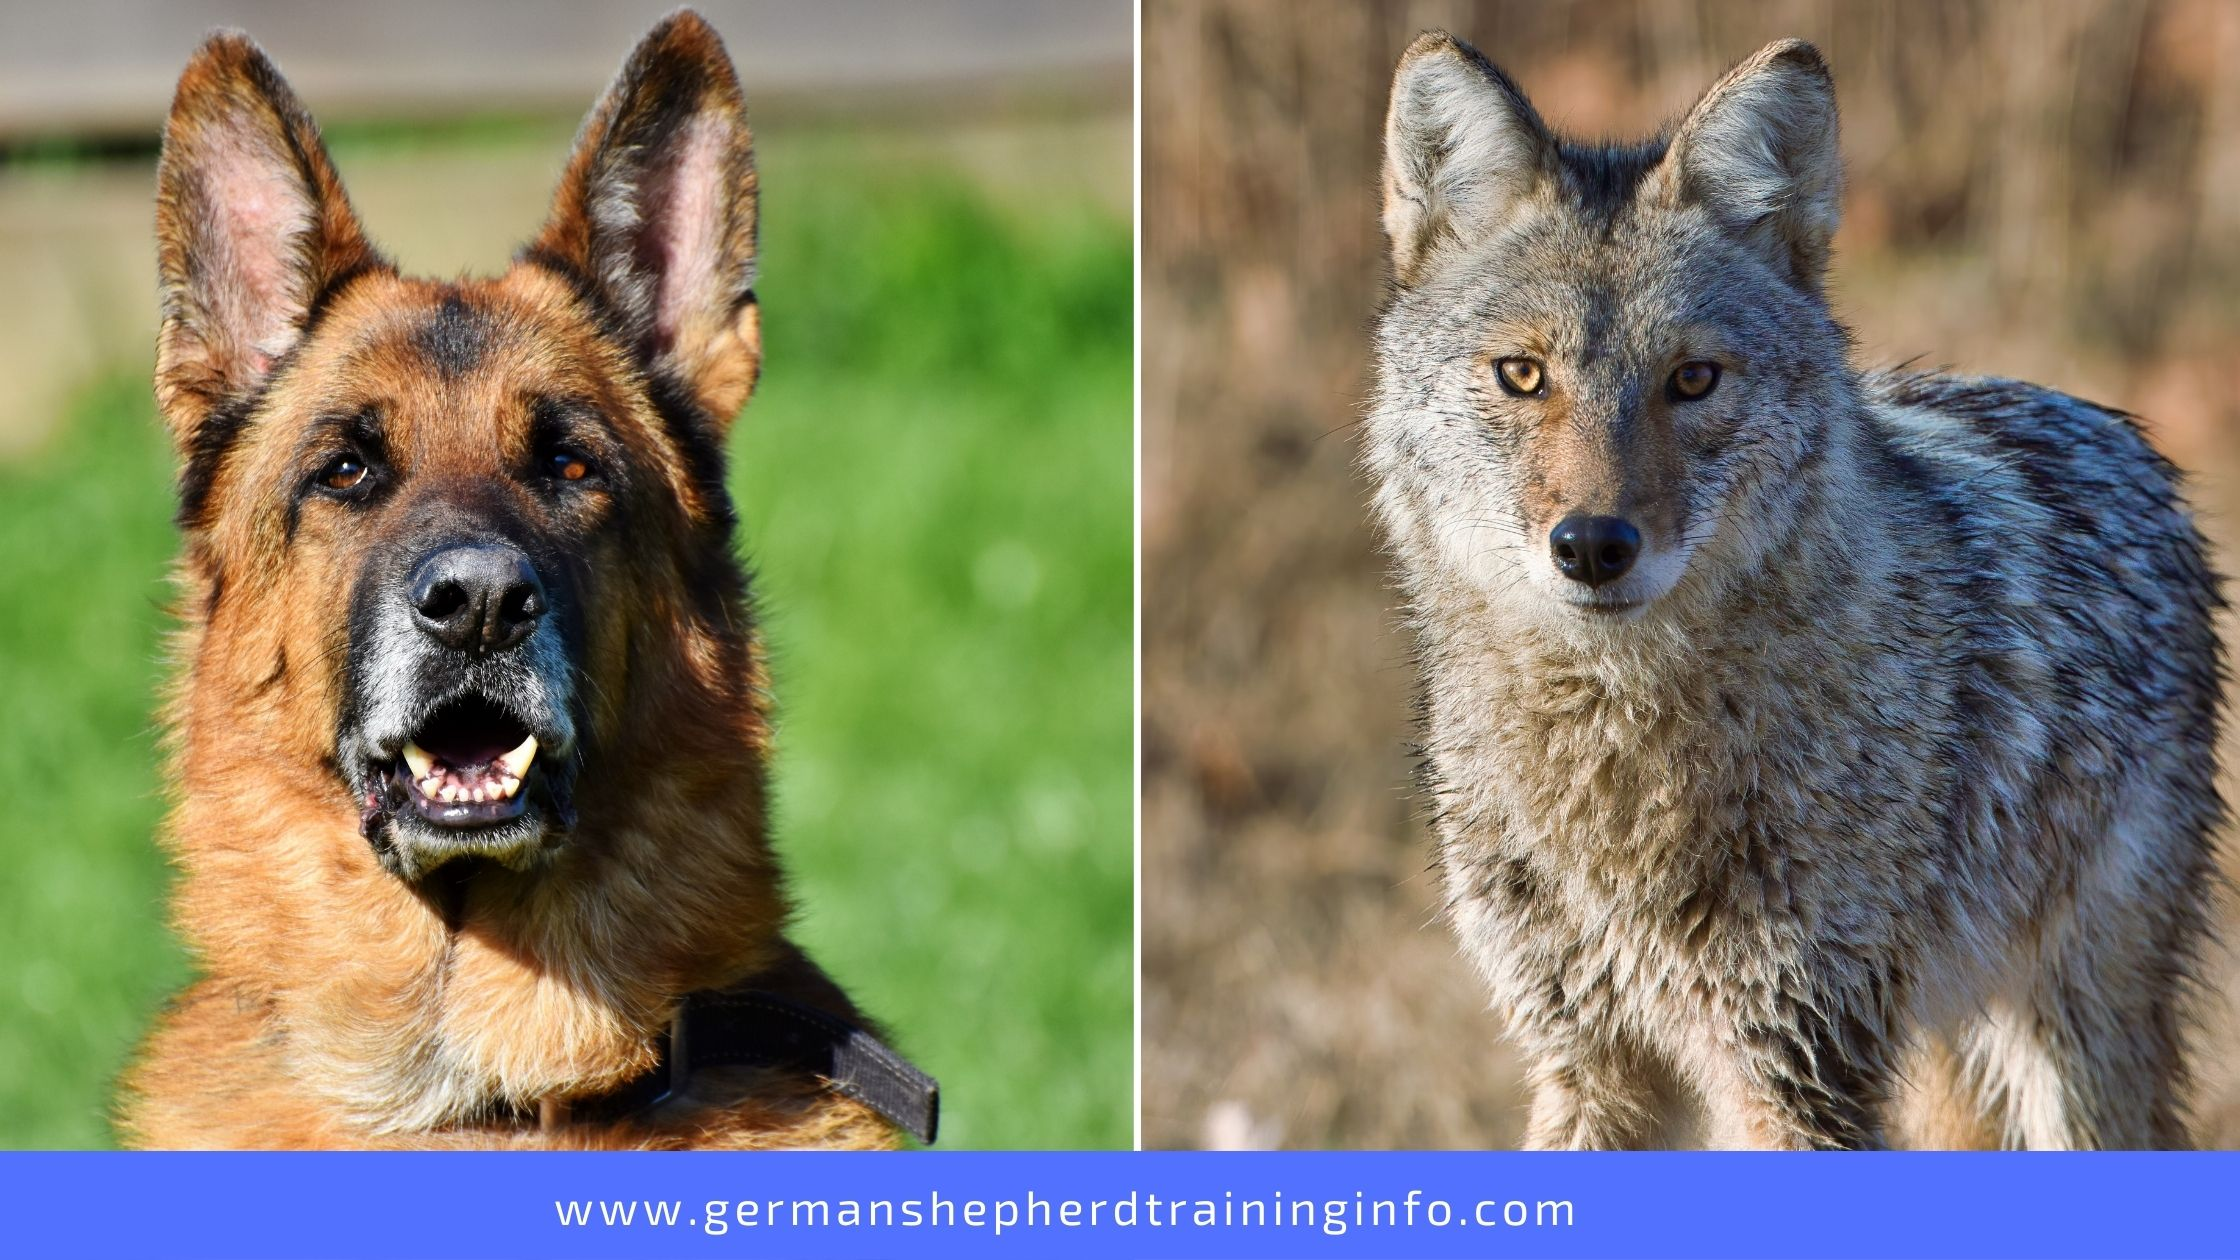 German Shepherd vs Coyote: Physical Attributes, Nutrition and Temperament Comparison